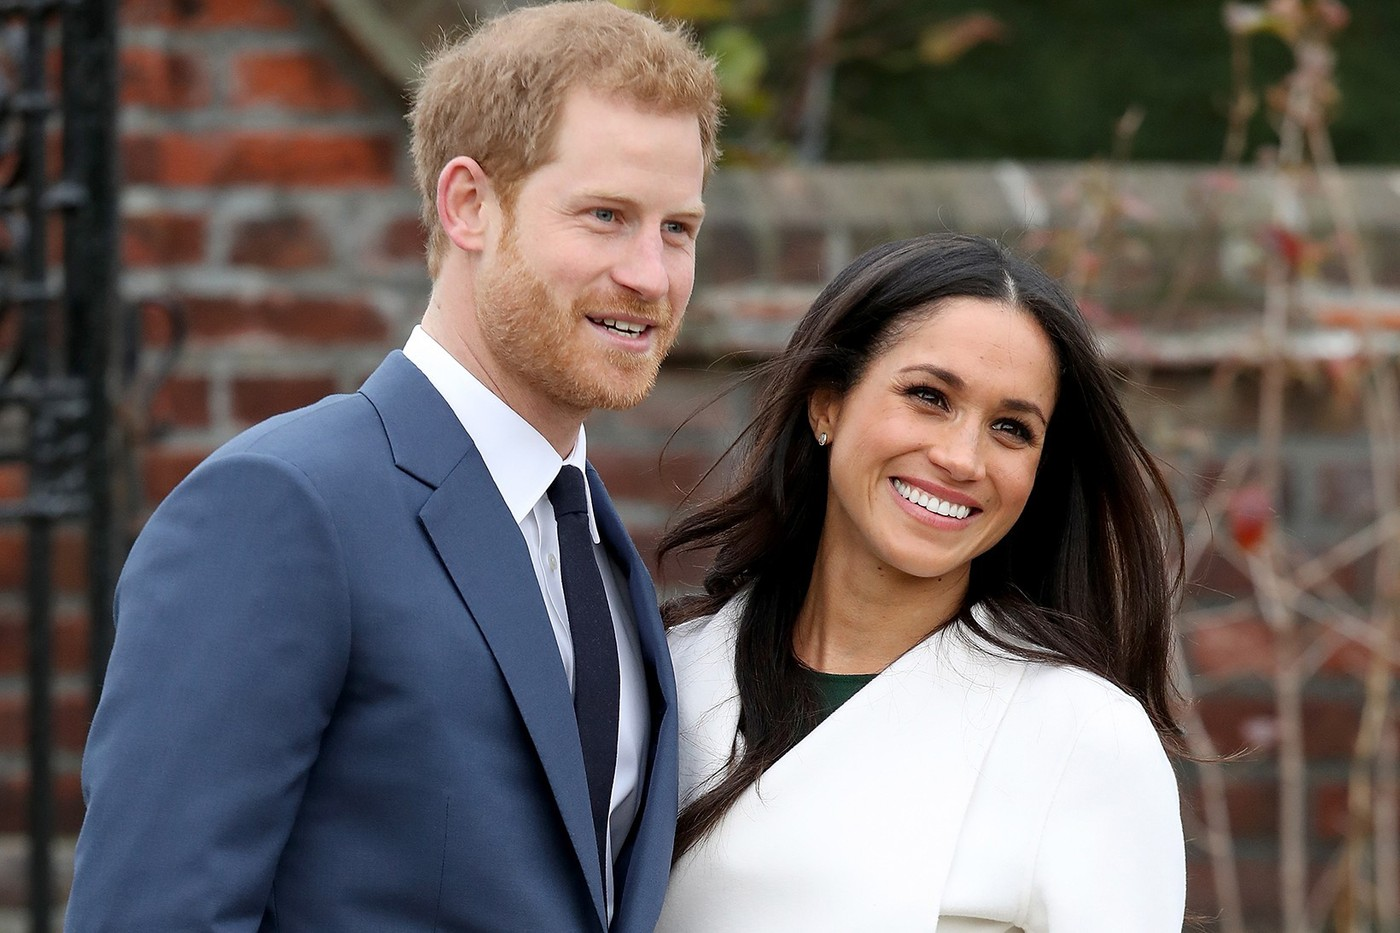 The Duchess of Sussex gave birth to Lilibet Diana on June 4